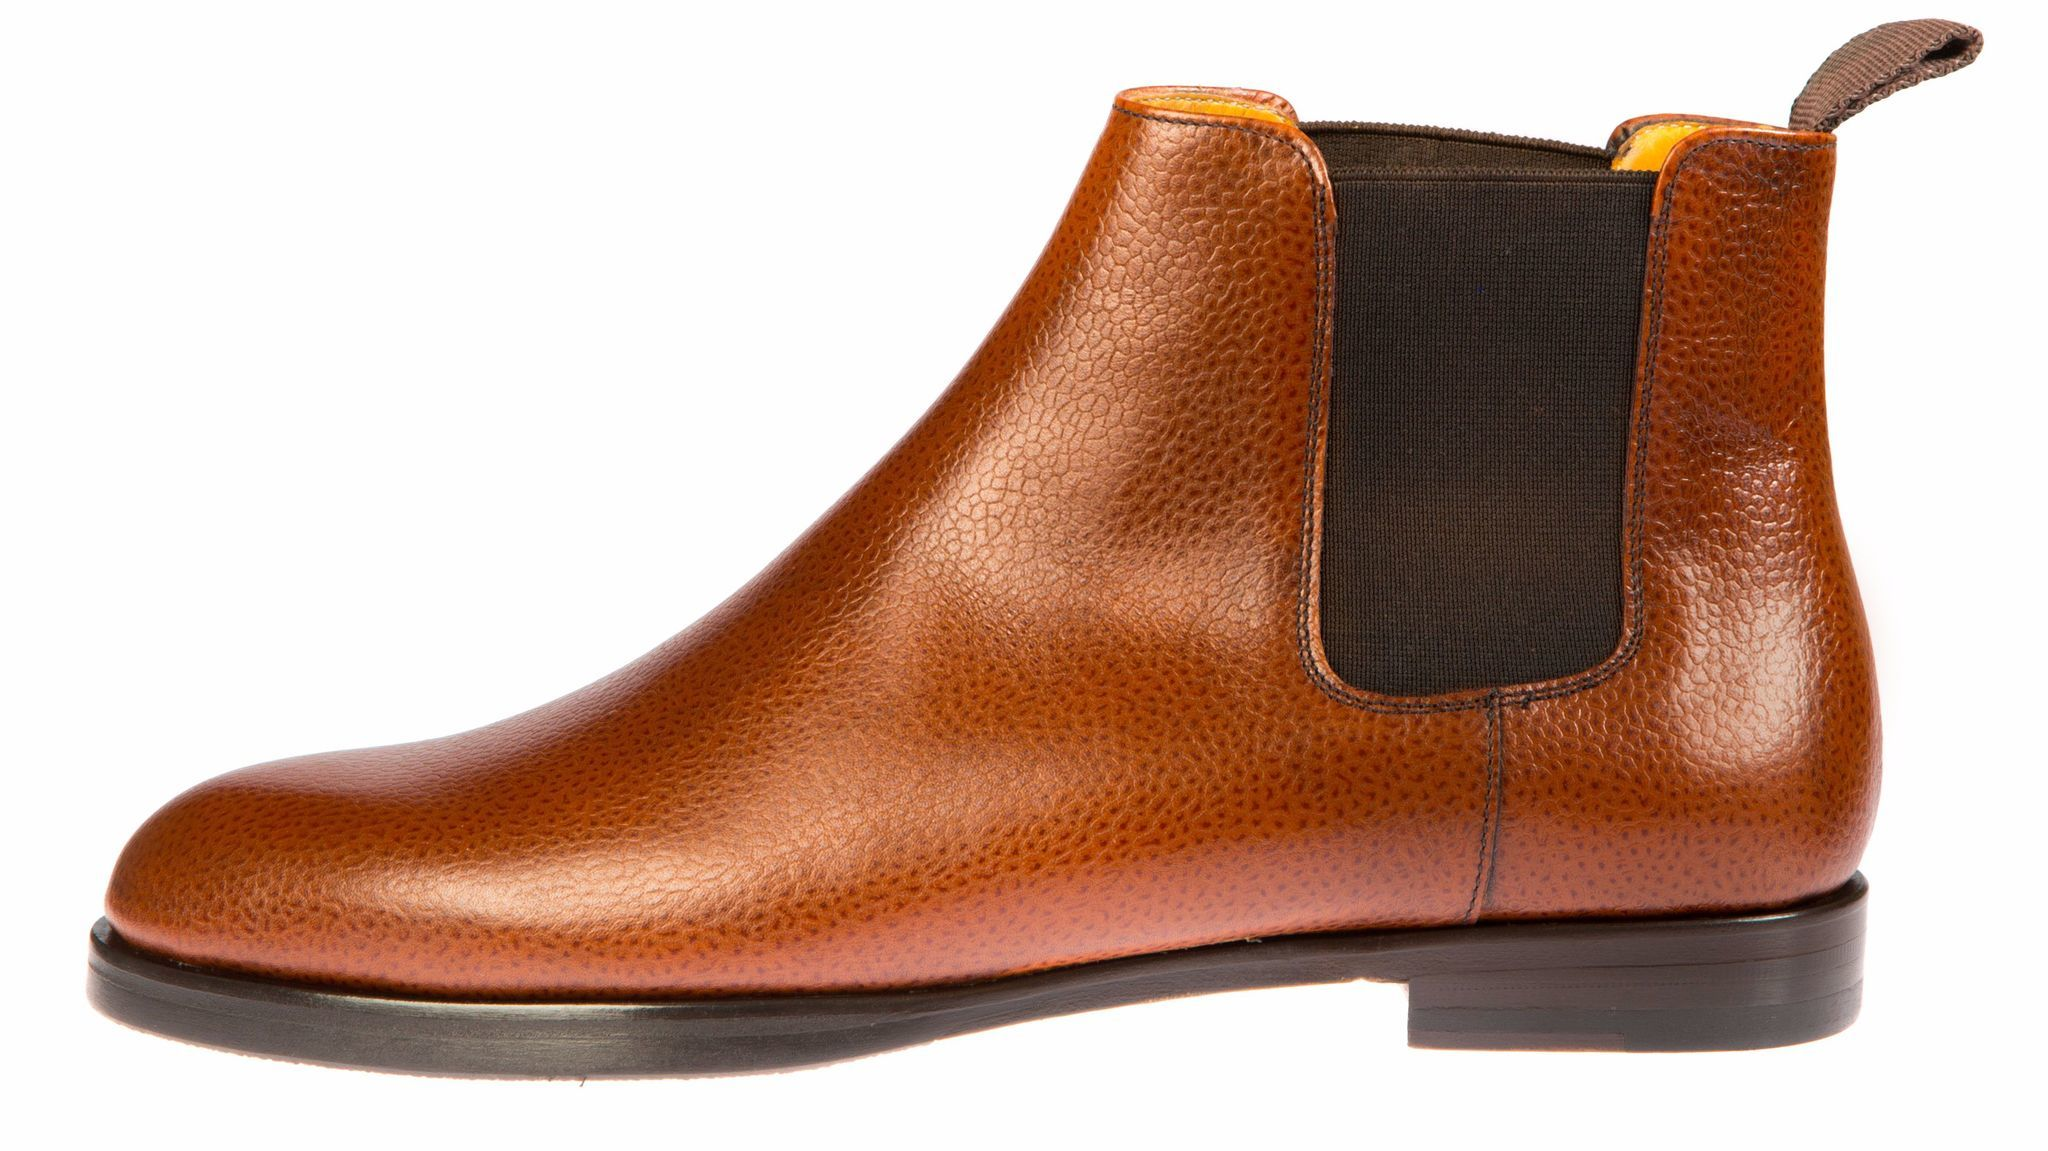 Quero Shoes has a variety of shoes and boots for men and women such as this Chelsea boot ($285) available at its Venice pop-up shop.